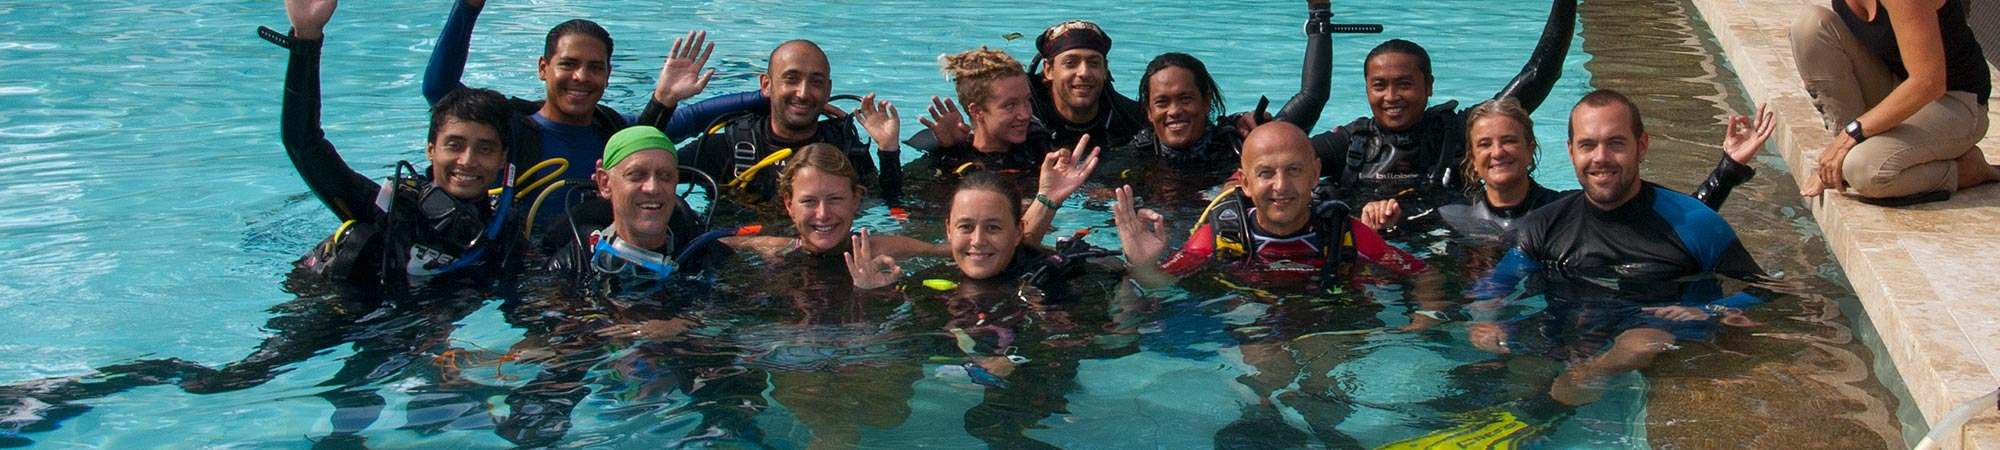 Scuba Diving at Atmosphere Resorts & Spa in Dumaguete, Philippines. Join a scuba course or a fun dive at Atmosphere - it will be the highlight of your holiday.